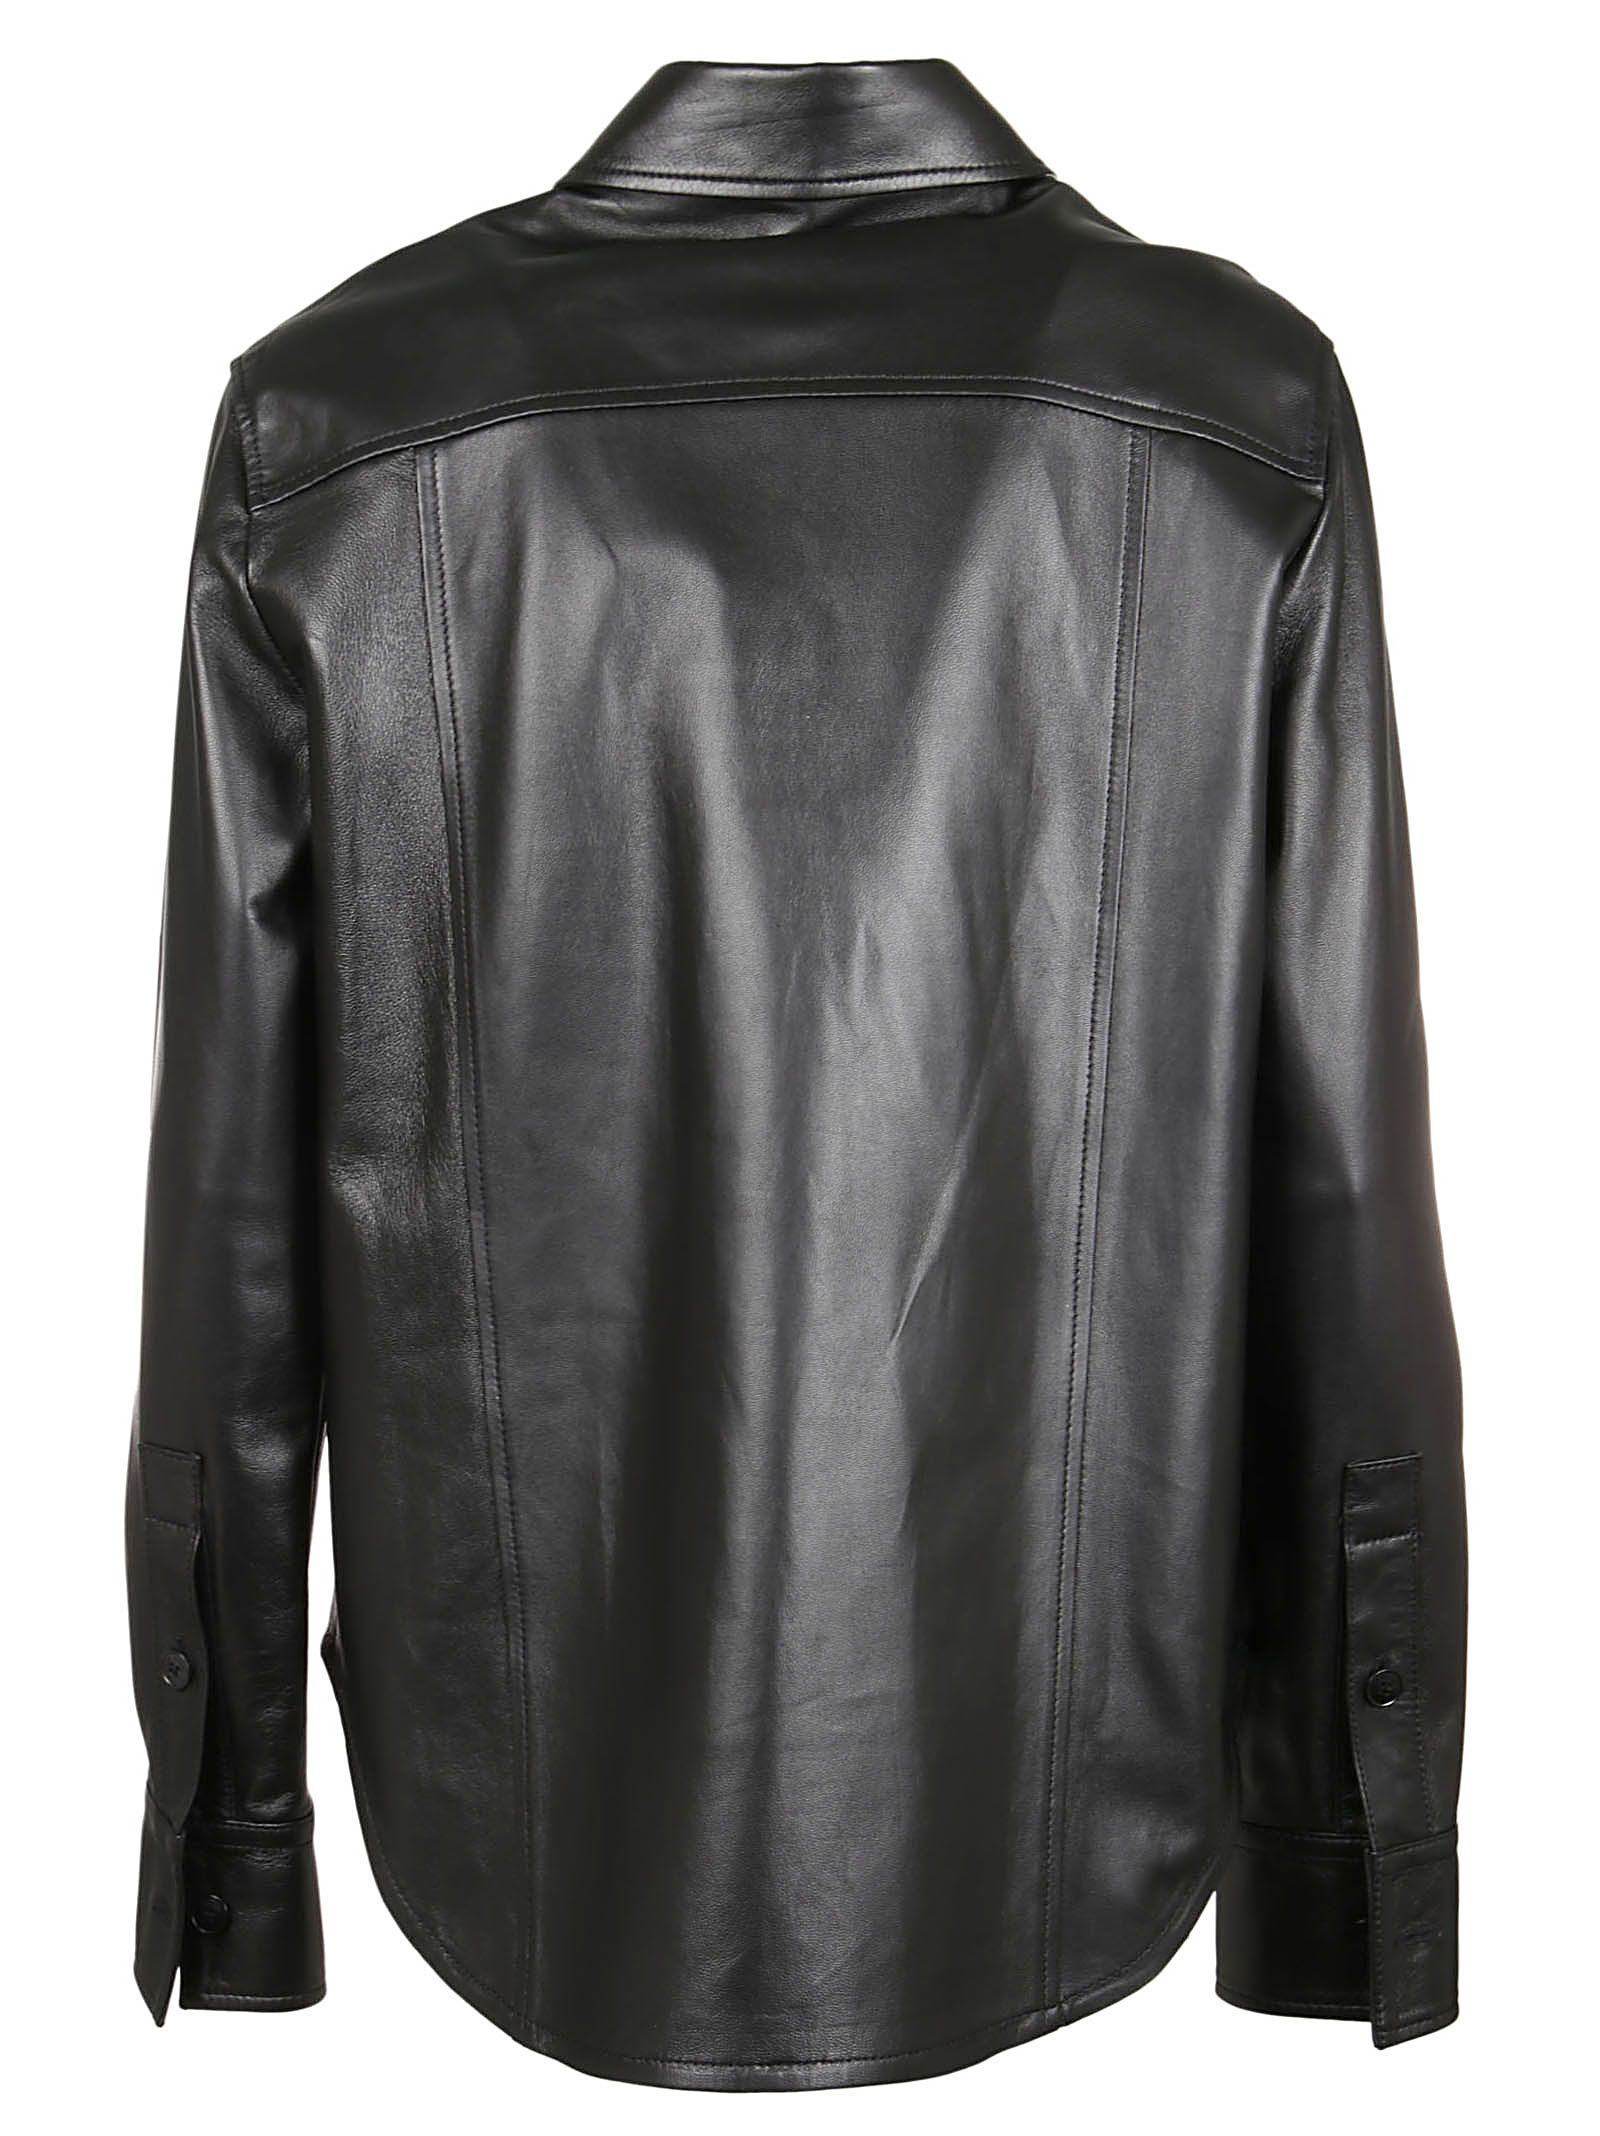 CALVIN KLEIN WOMEN'S K20K201045018 BLACK LEATHER SHIRT